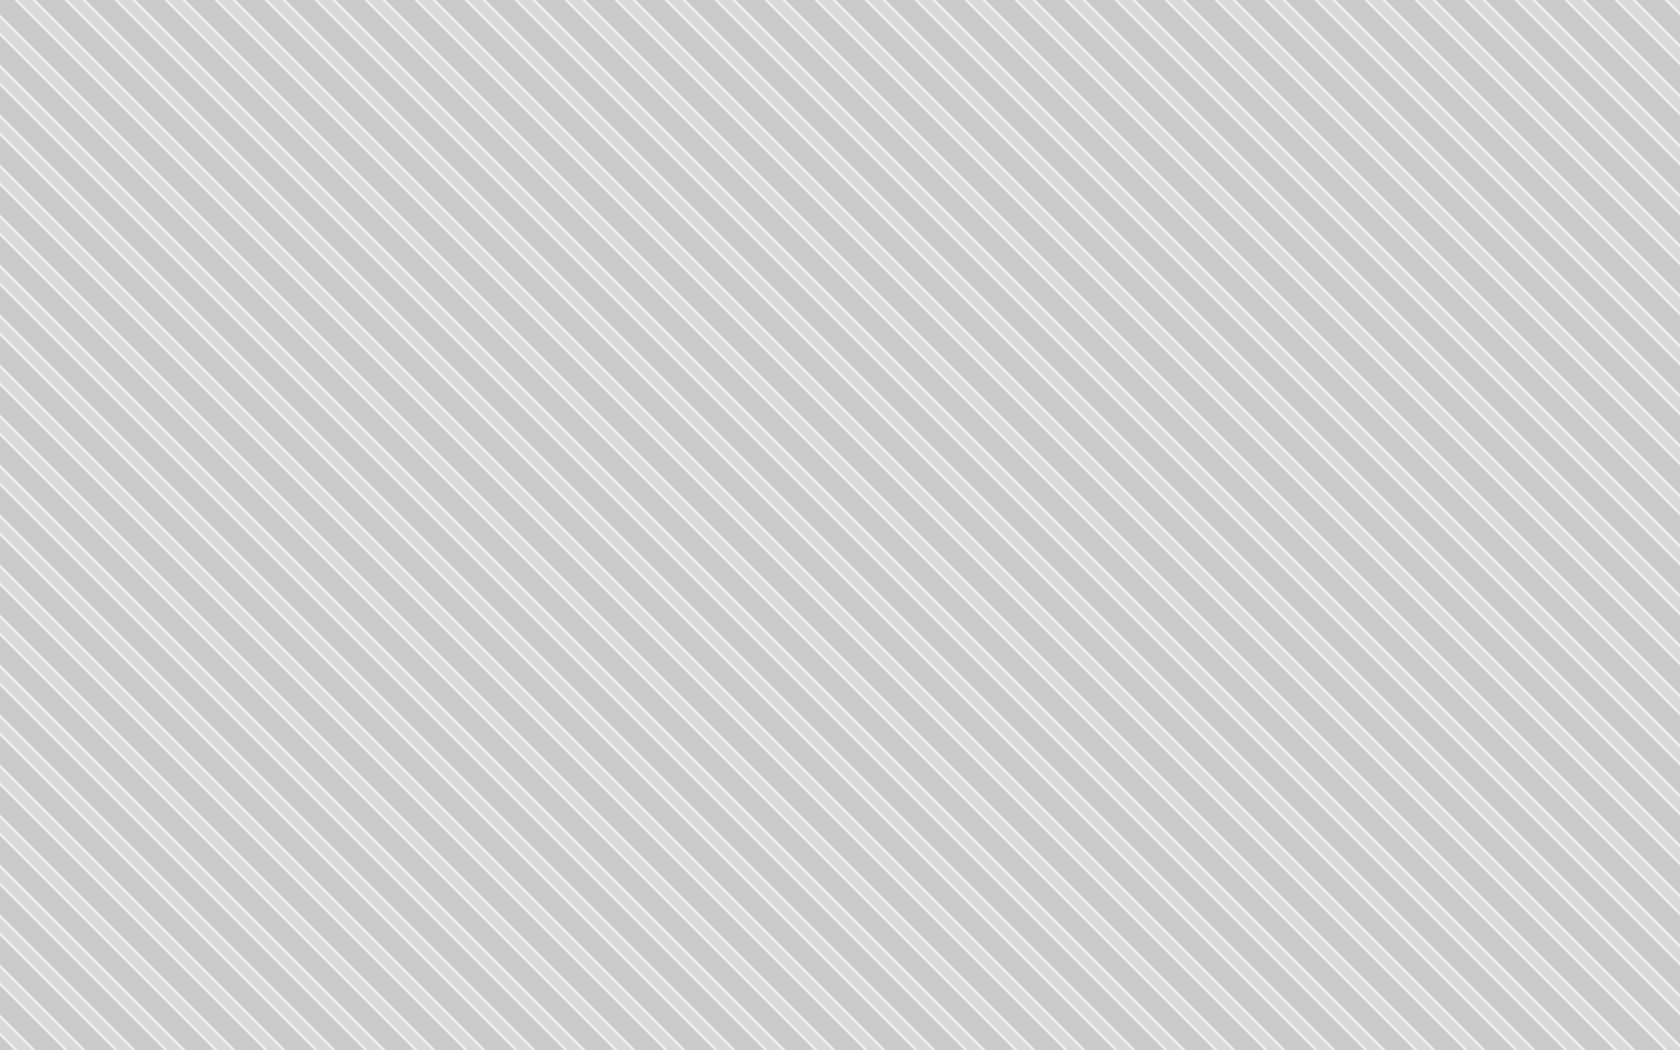 gallery/grey-striped-background-20721_4602